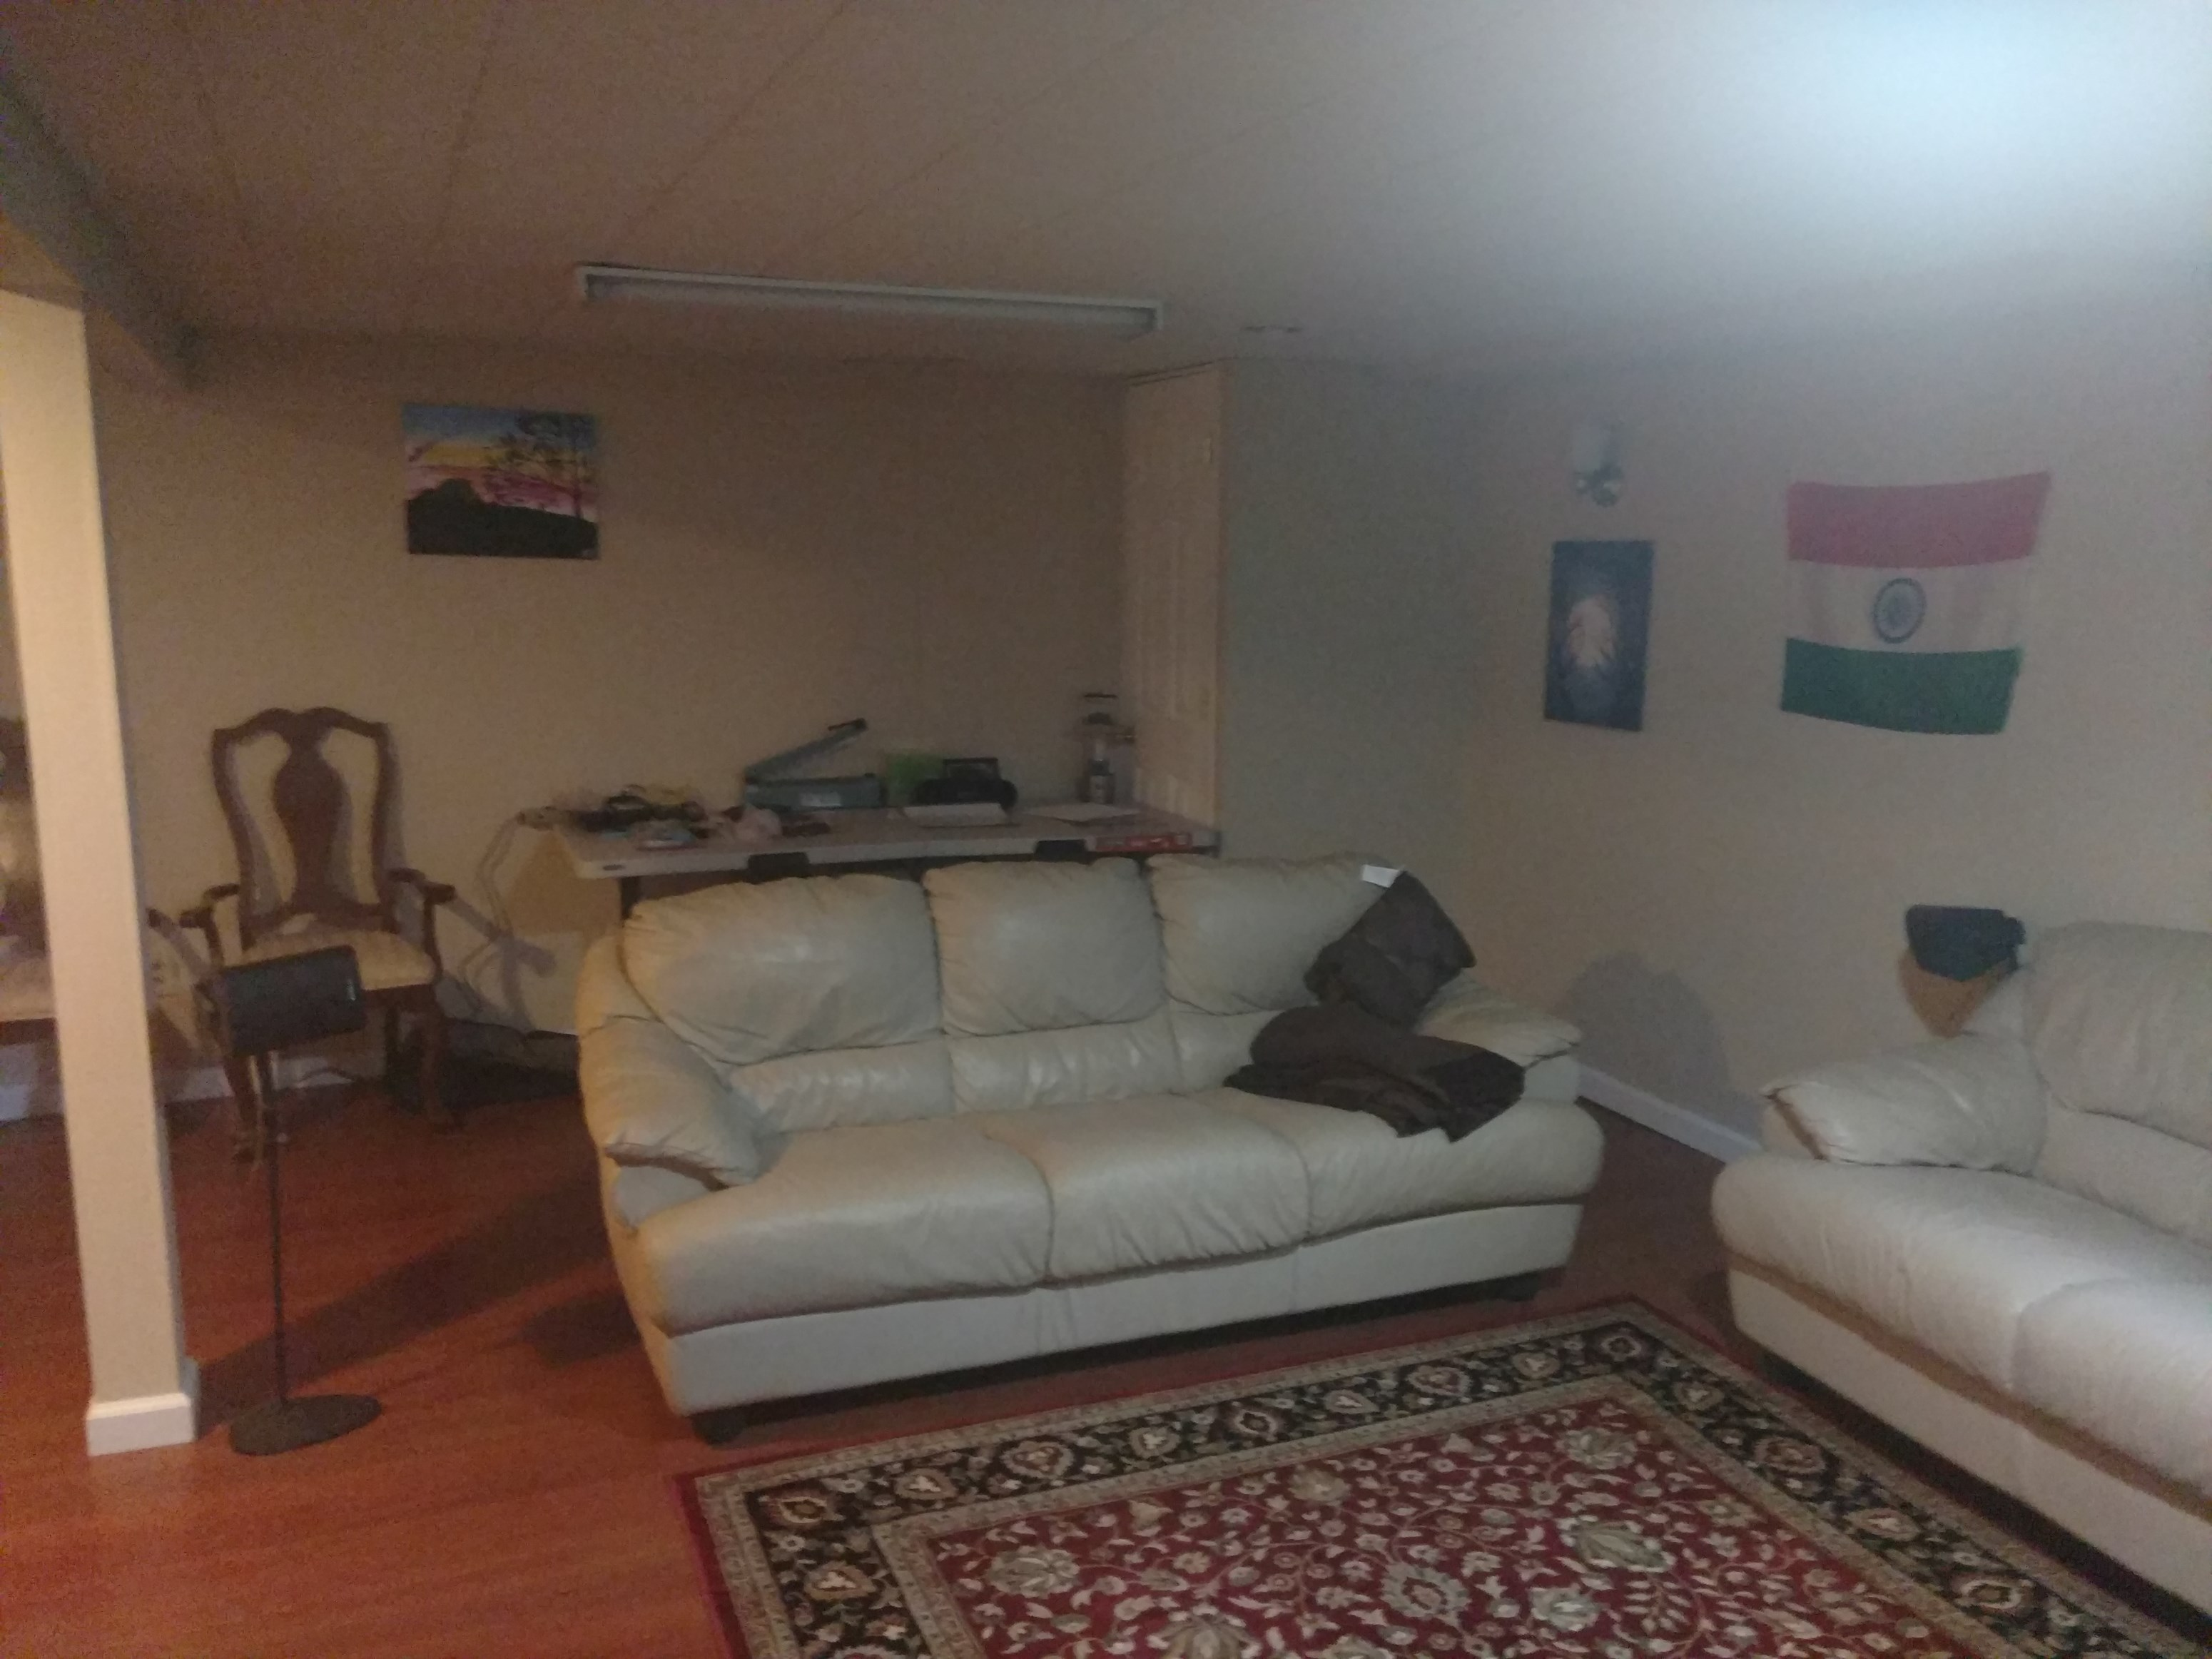 veggie tenant needed for private room in fully furnished basement apt 800 incl util - Basement Apartments